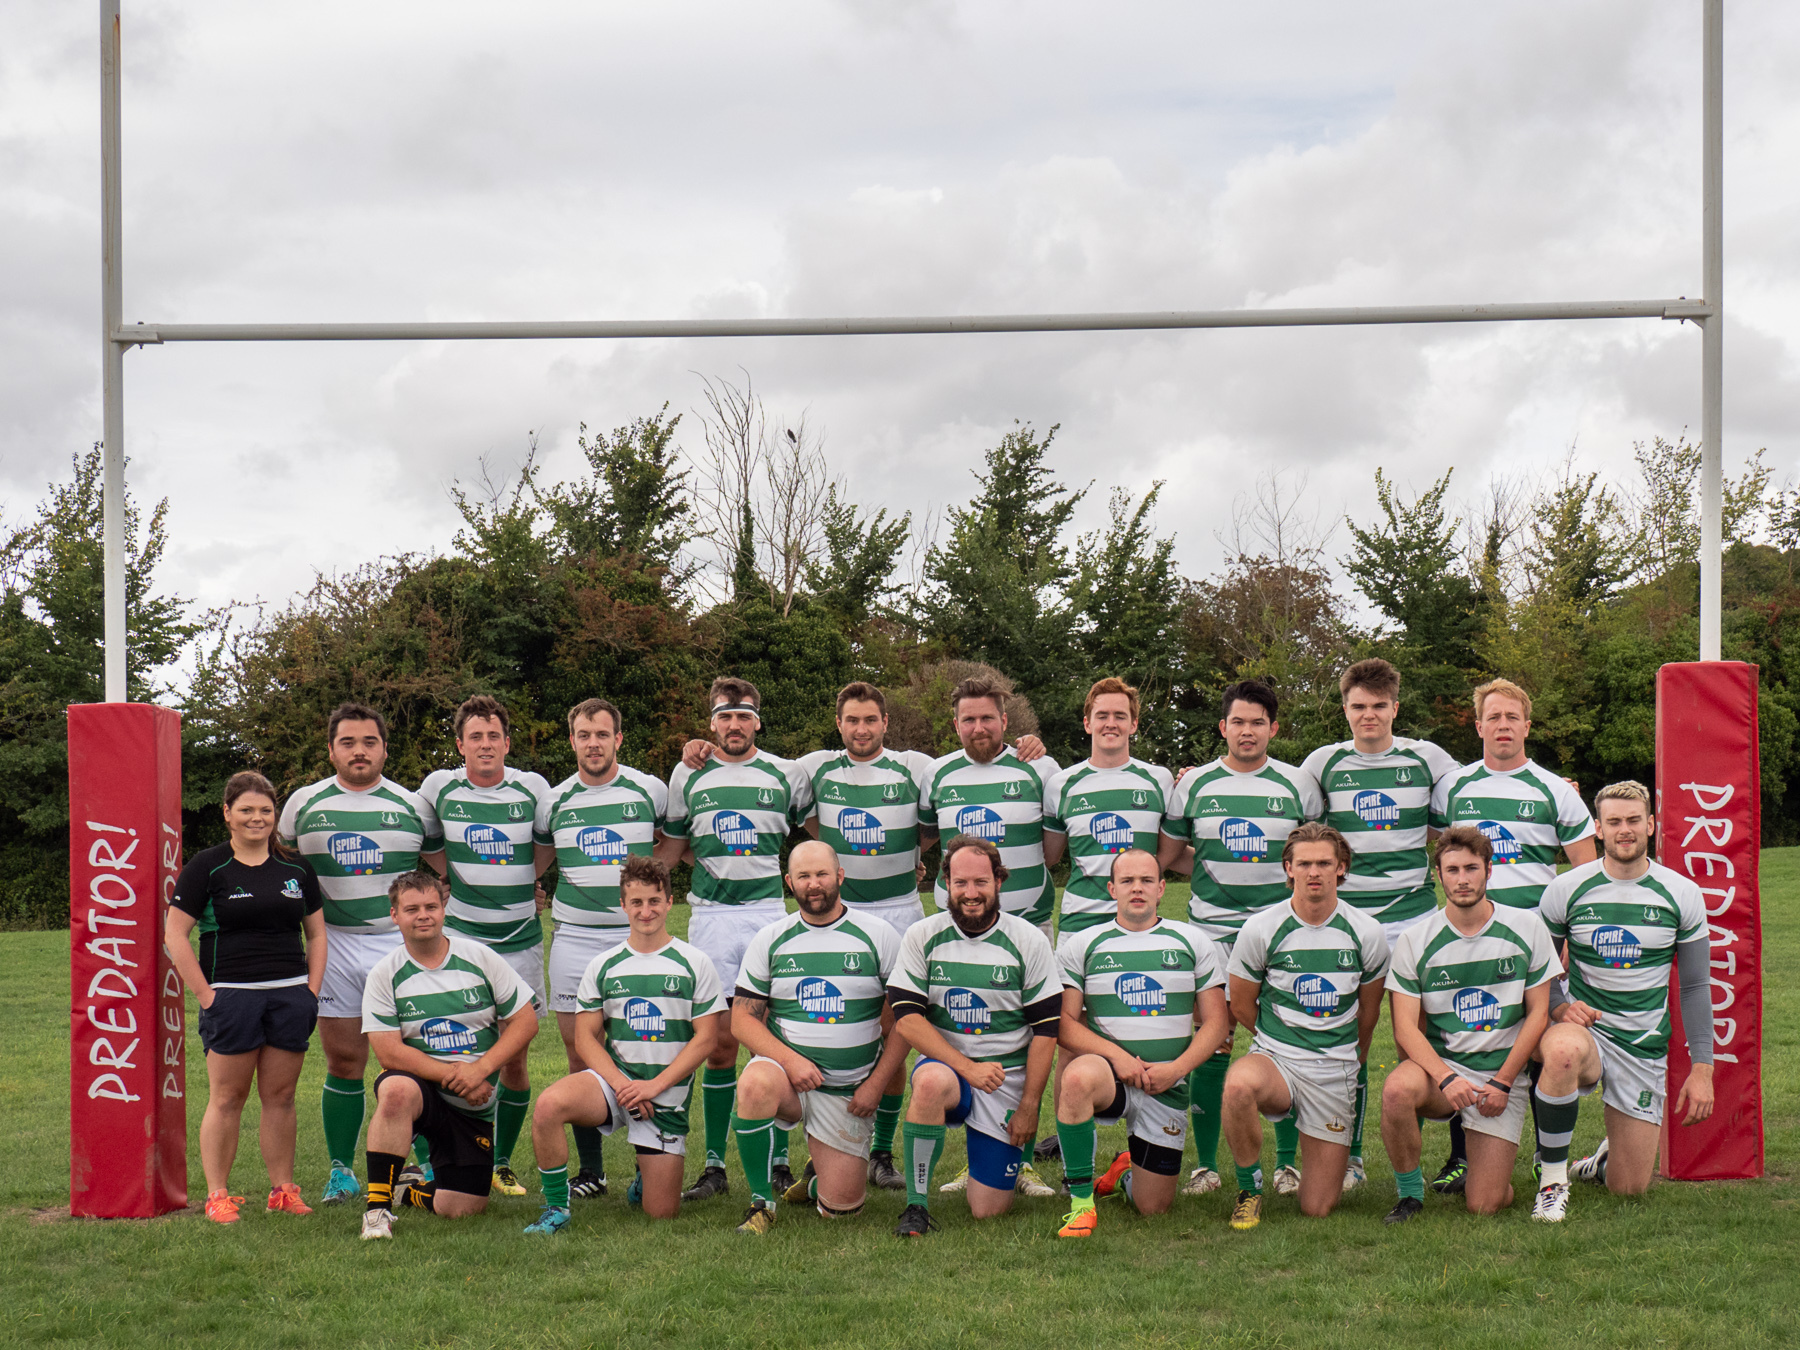 Salisbury United - the club's second team - before their match against Dorset Dockers